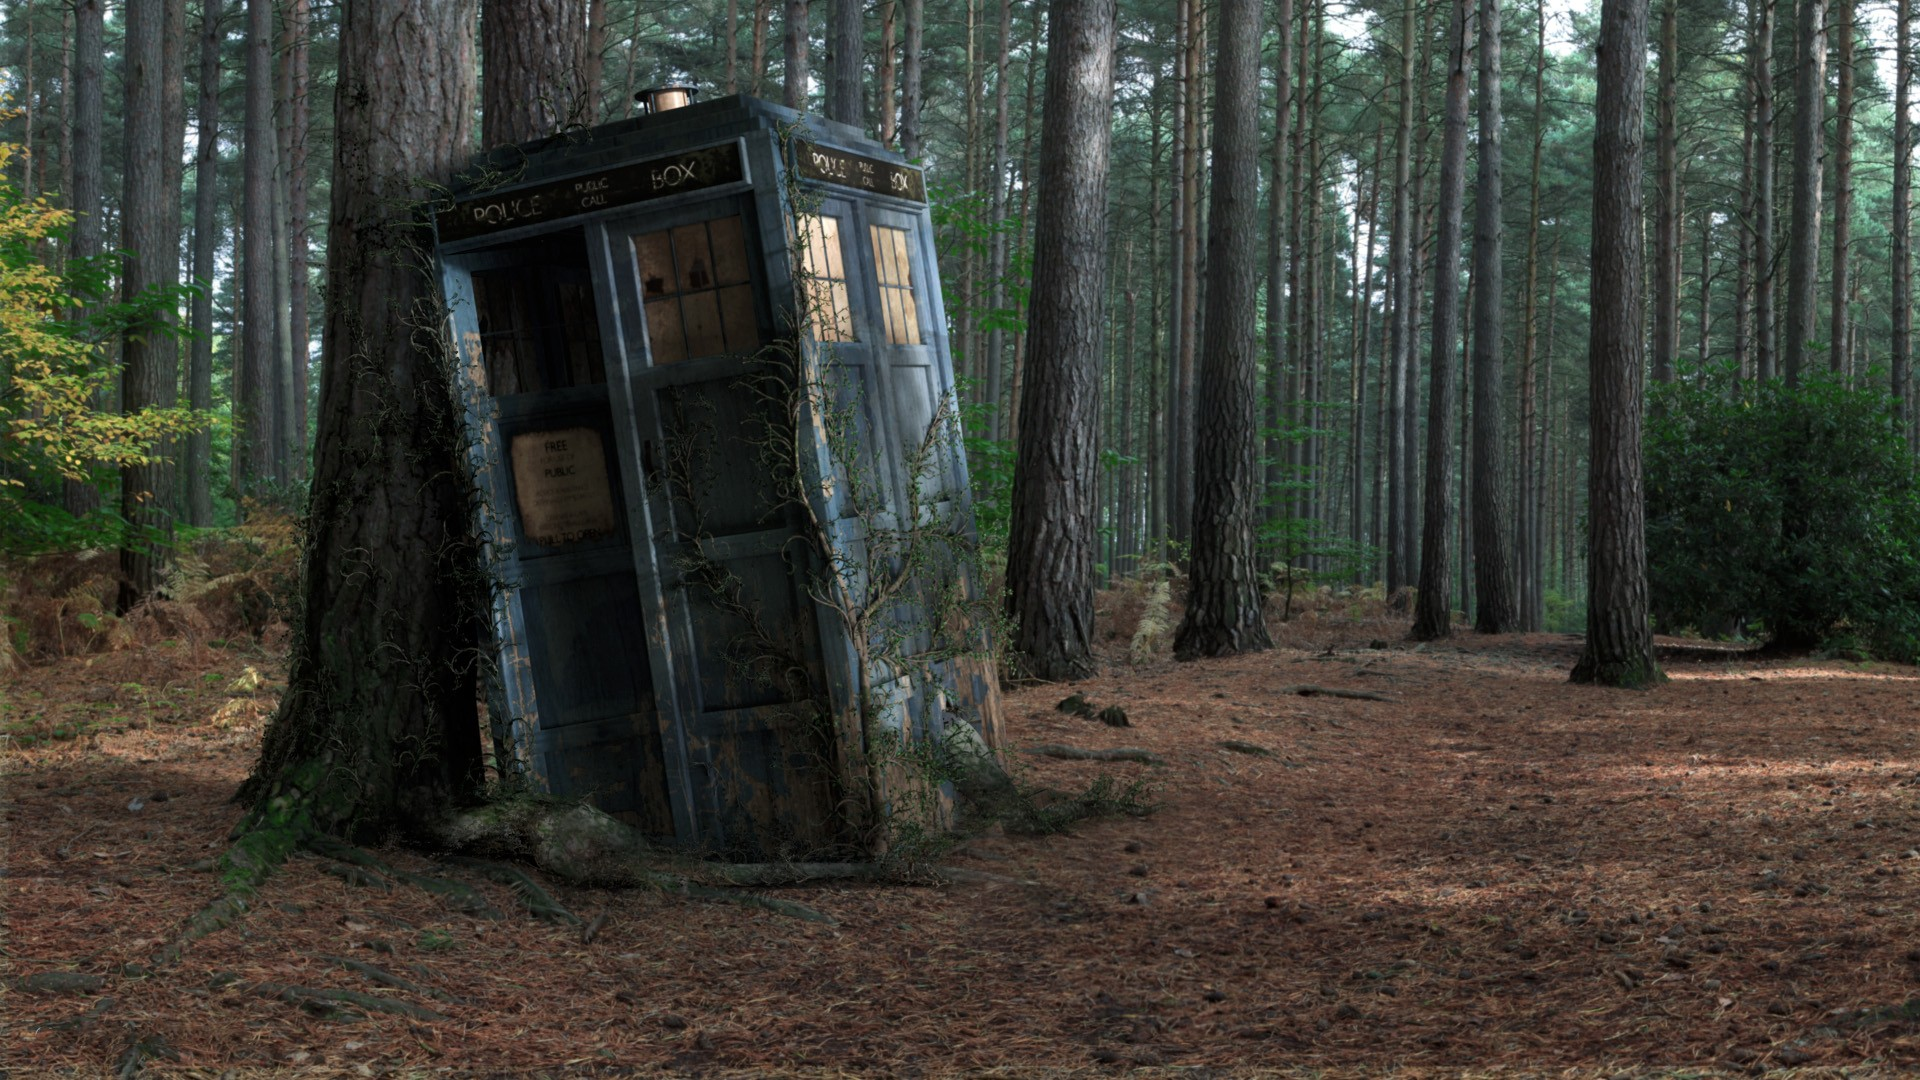 Free Download Cabin In The Woods Wallpaper 1920x1080 For Your